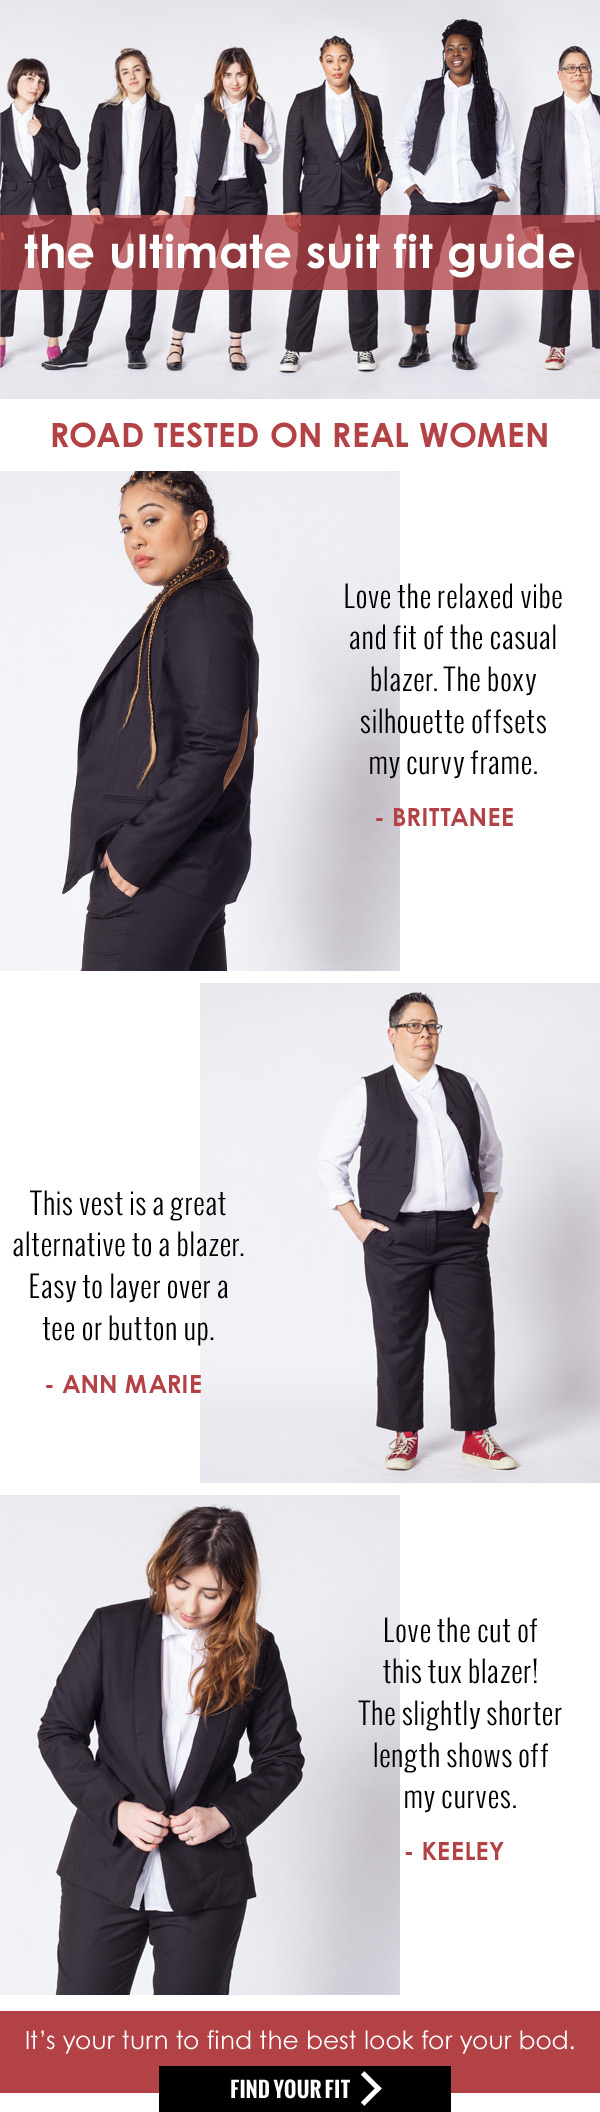 The Ultimate Suit Fit Guide